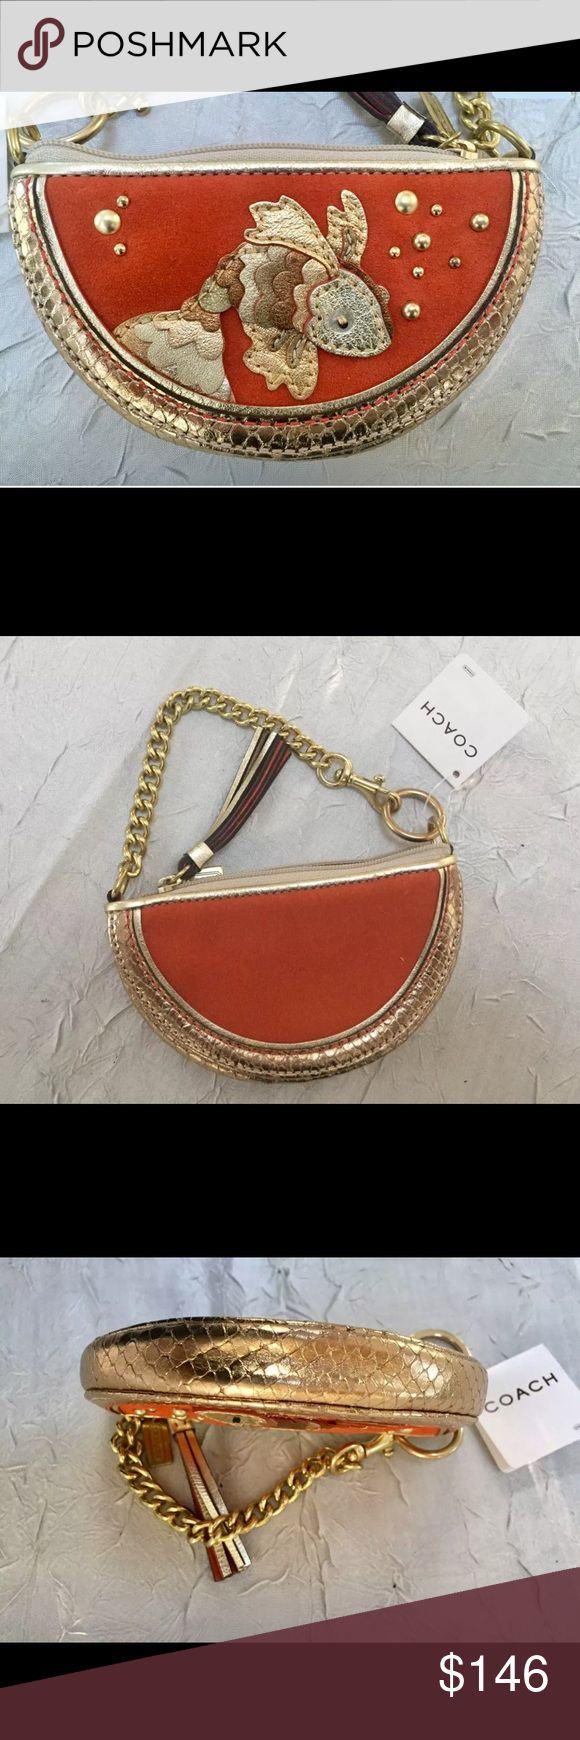 NWT COACH *RARE* Koi Fish 🐠 Coin Purse Wristlet! COACH COLLECTORS! Brand NEW, *RARE*, Koi Fish Coin Purse/Wristlet w/ attached tags & dust cover. This is the ONLY ONE online! Made from Suede Orange/Gold Python-embossed Leather with polished brass hardware. It is beautifully crafted with gold leather scales. Zip top closure w/ leather tassel zipper pull & keychain. The lining is orange fabric. A MUST HAVE for all COLLECTORS! Never used. Non-smoking home. PRICE FIRM on this item. Coach Bags…